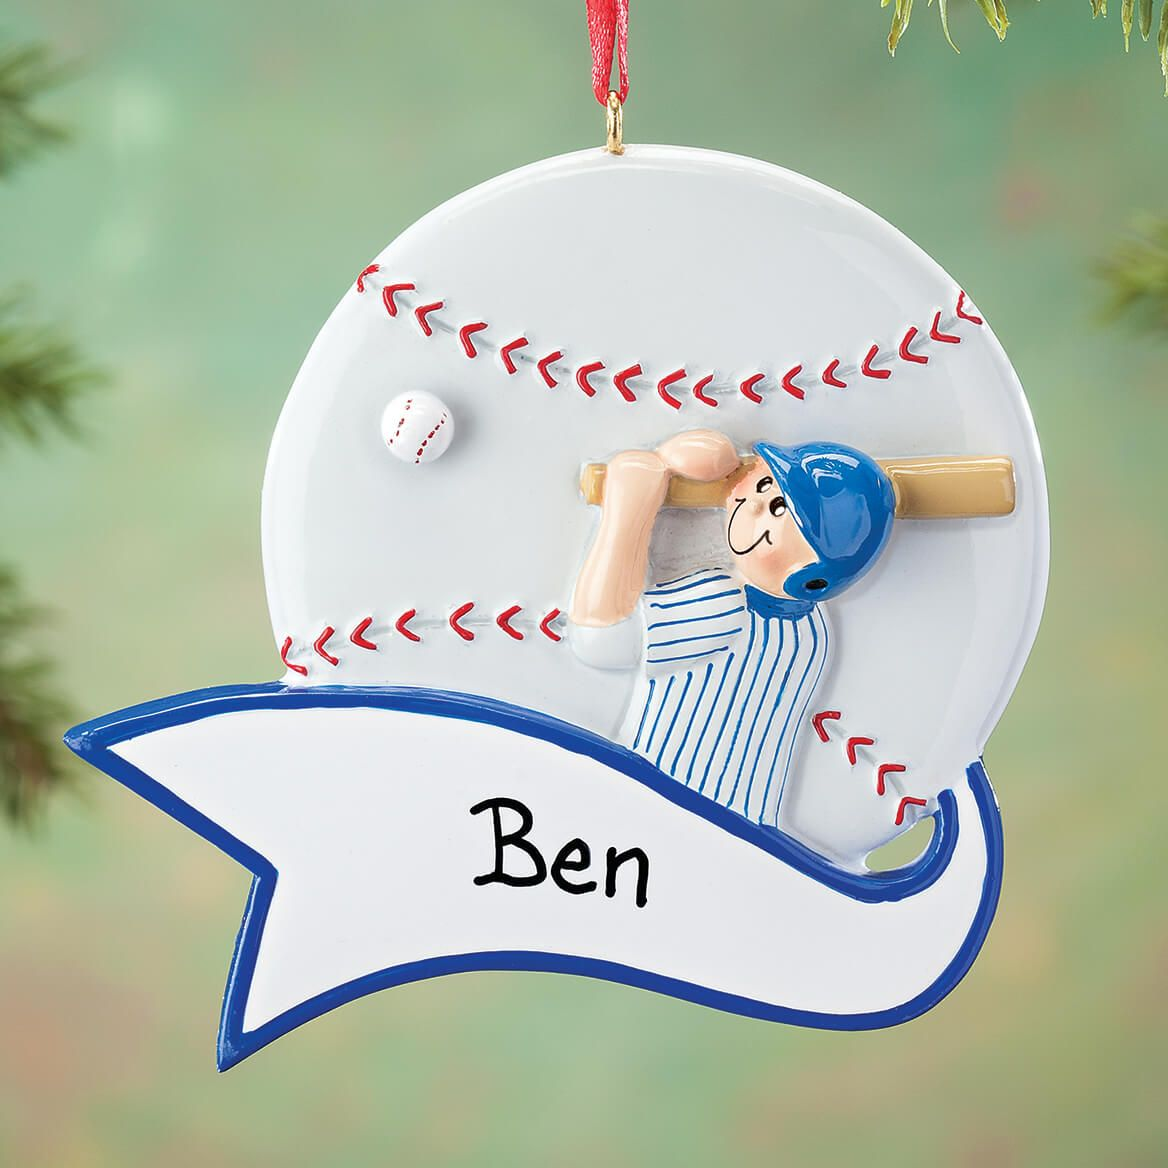 c70ffcd2c5c6a Score a home run with this Personalized Baseball Ornament perfect for any  baseball fan!